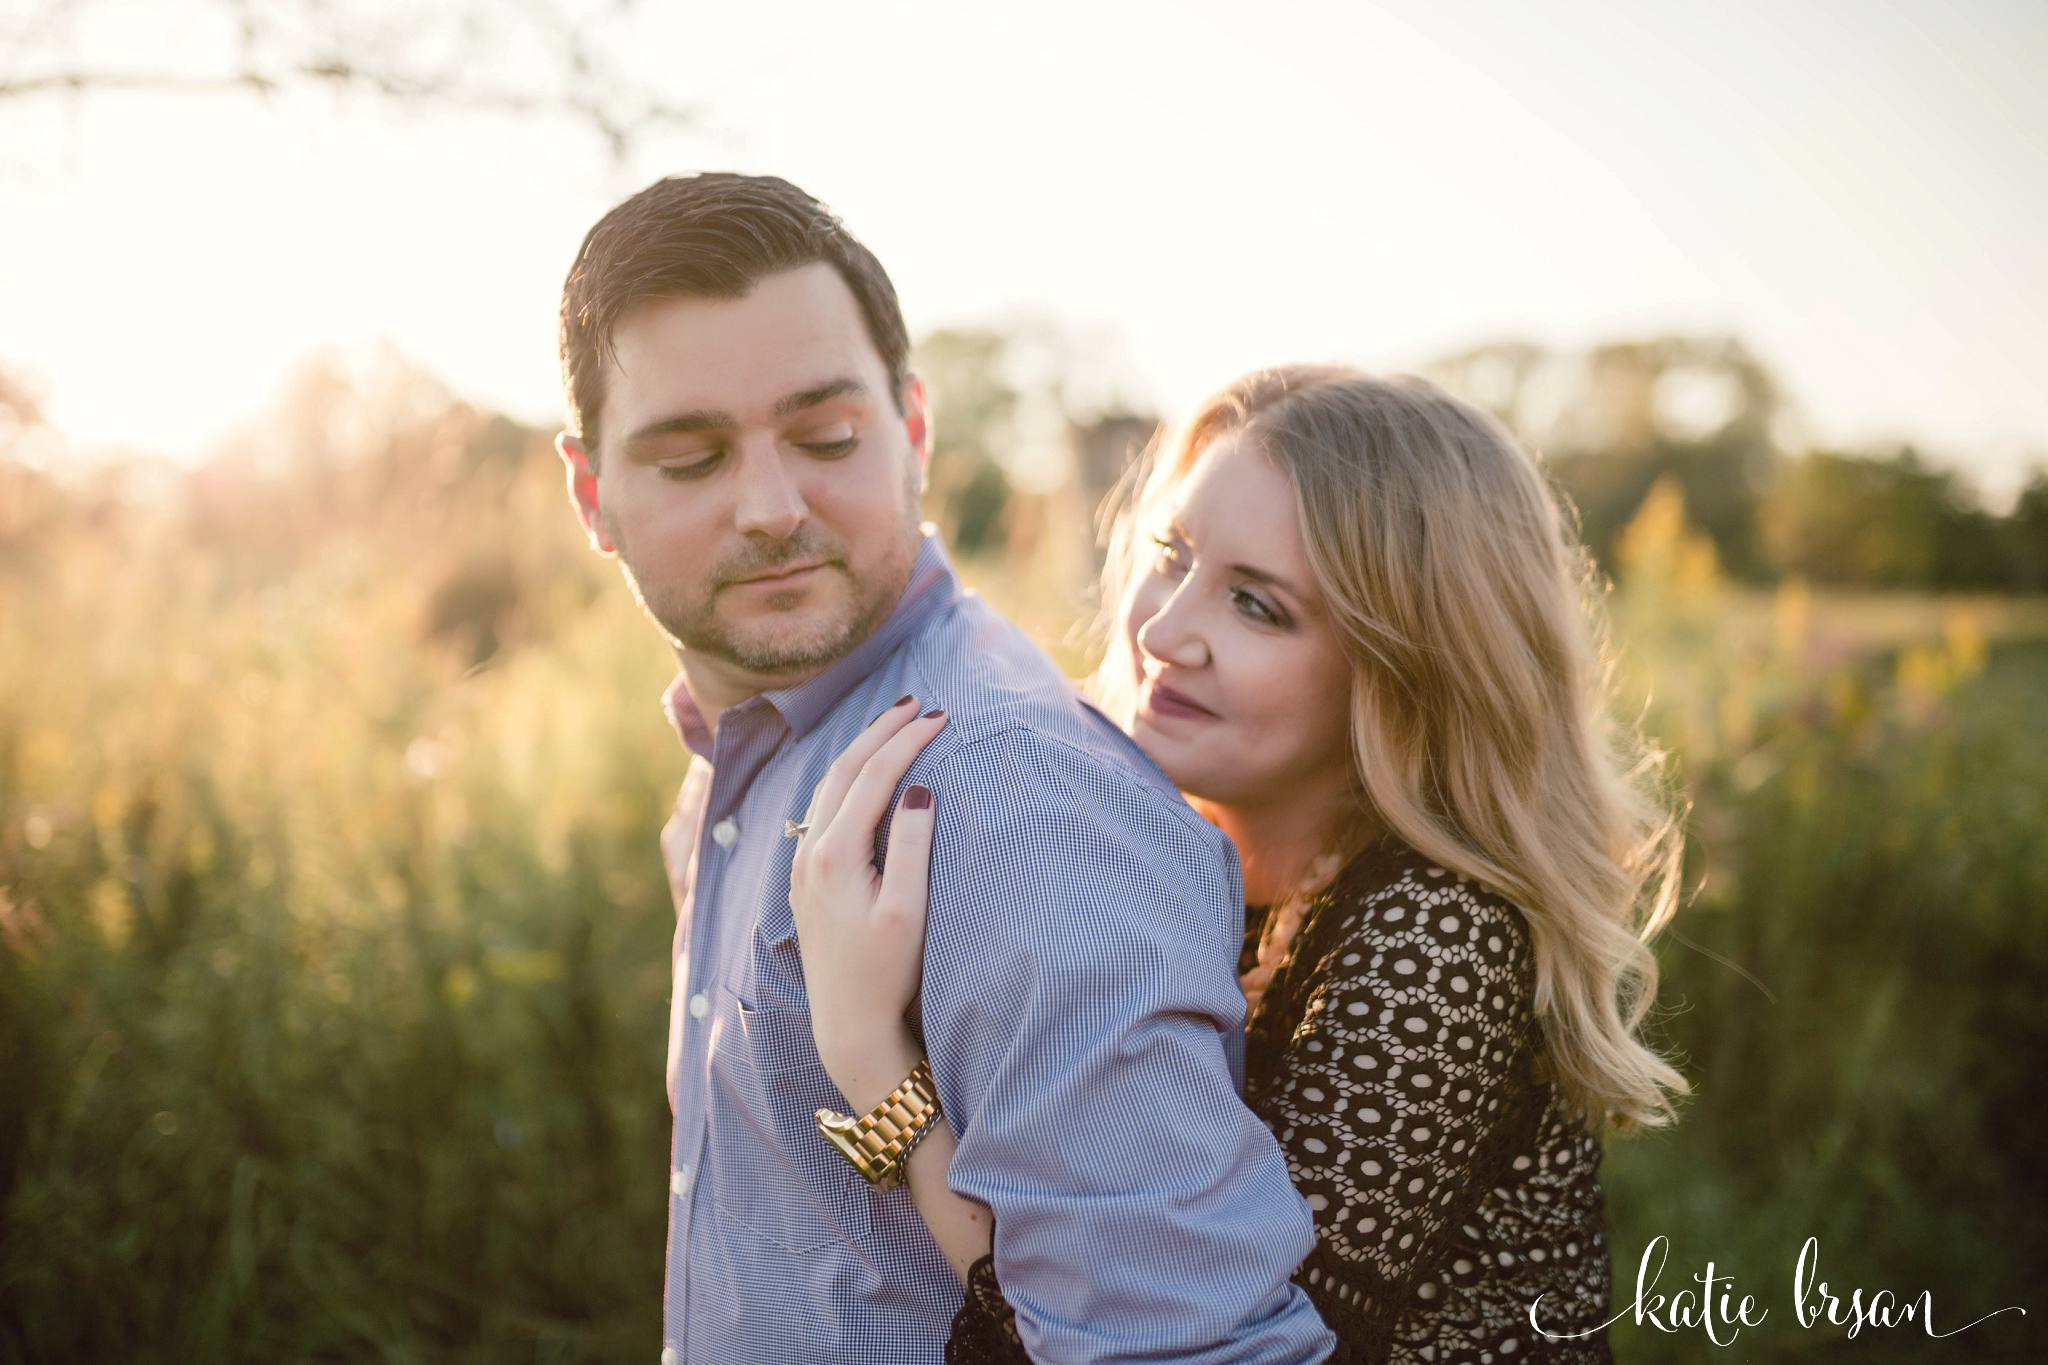 Mokena_EngagementSession_RuffledFeathers_Wedding_0954.jpg